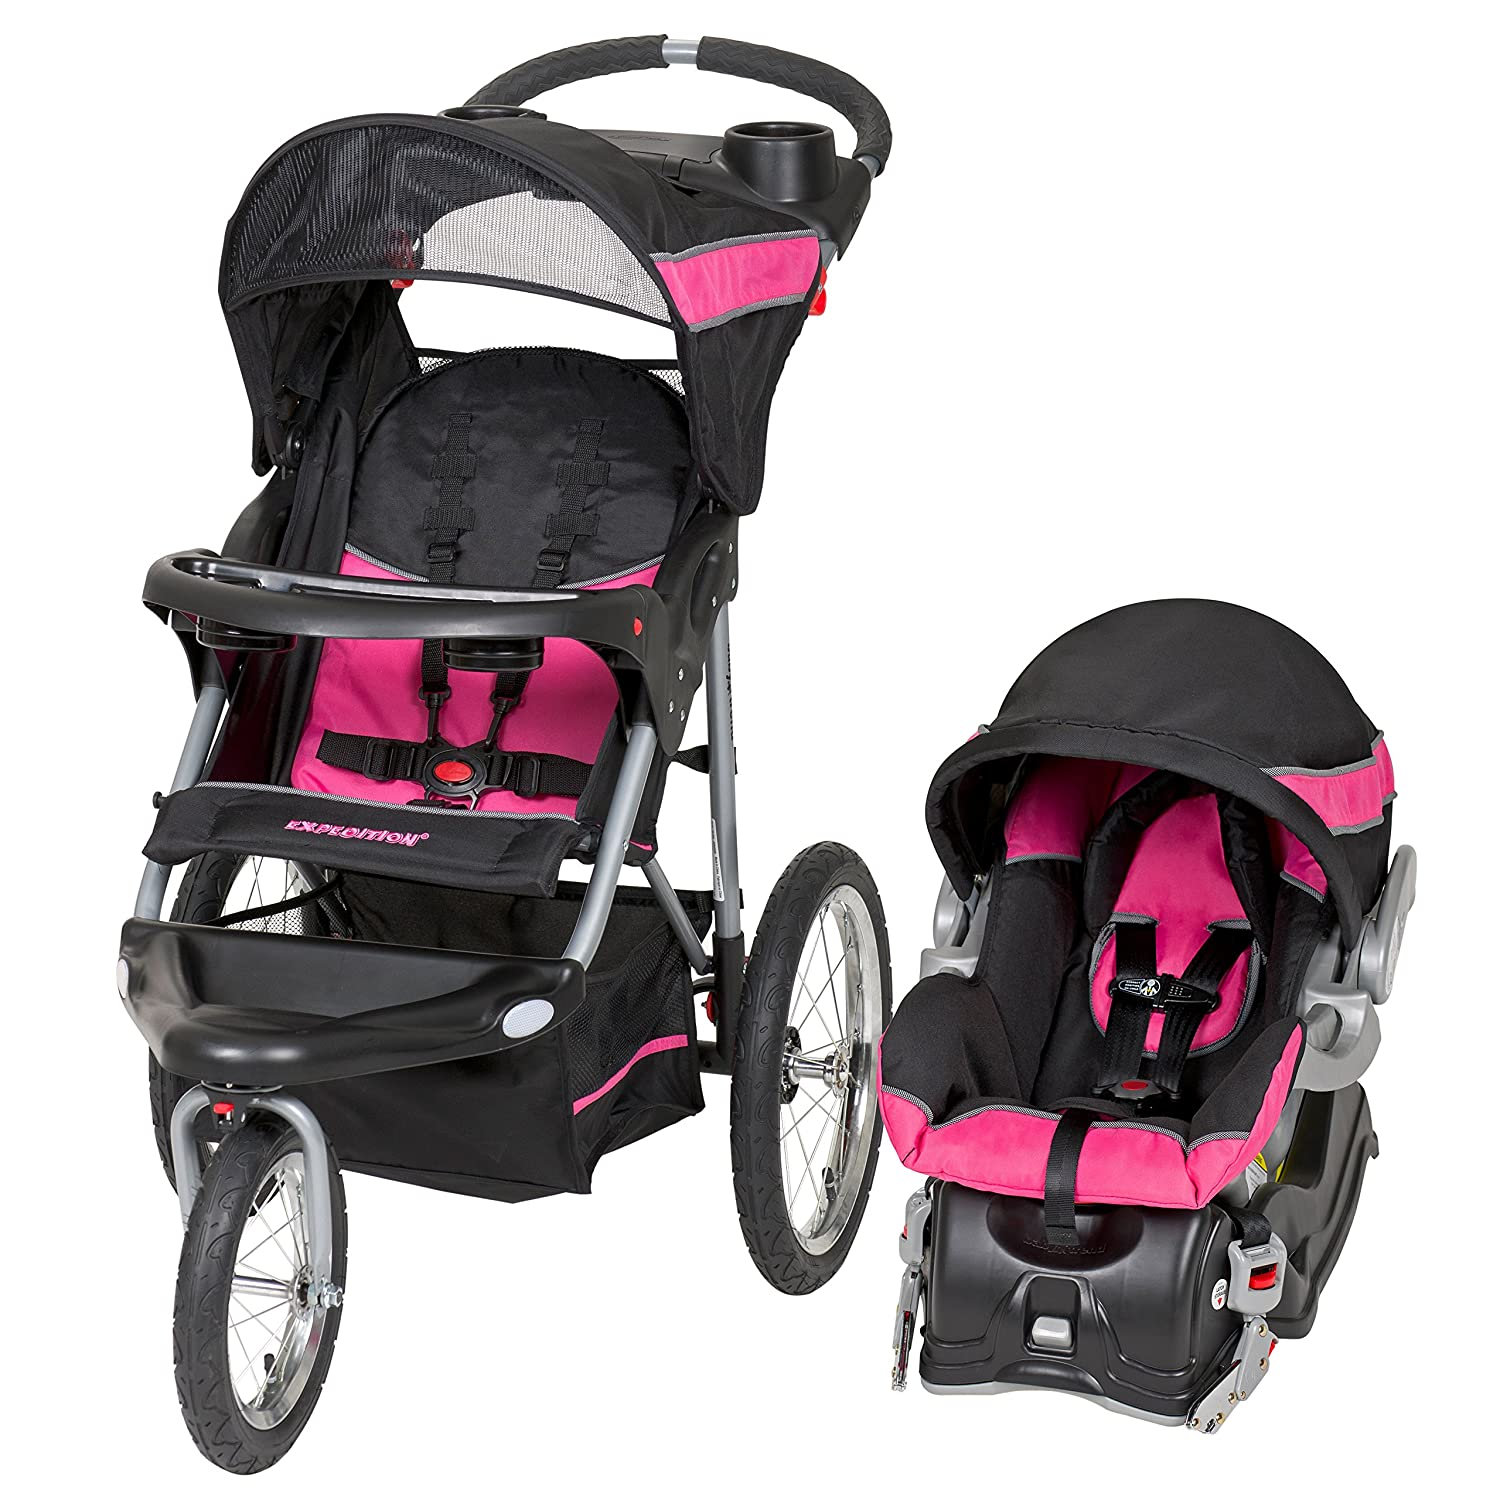 Amazon.com : Baby Trend Expedition Jogger Travel System, Bubble Gum ...